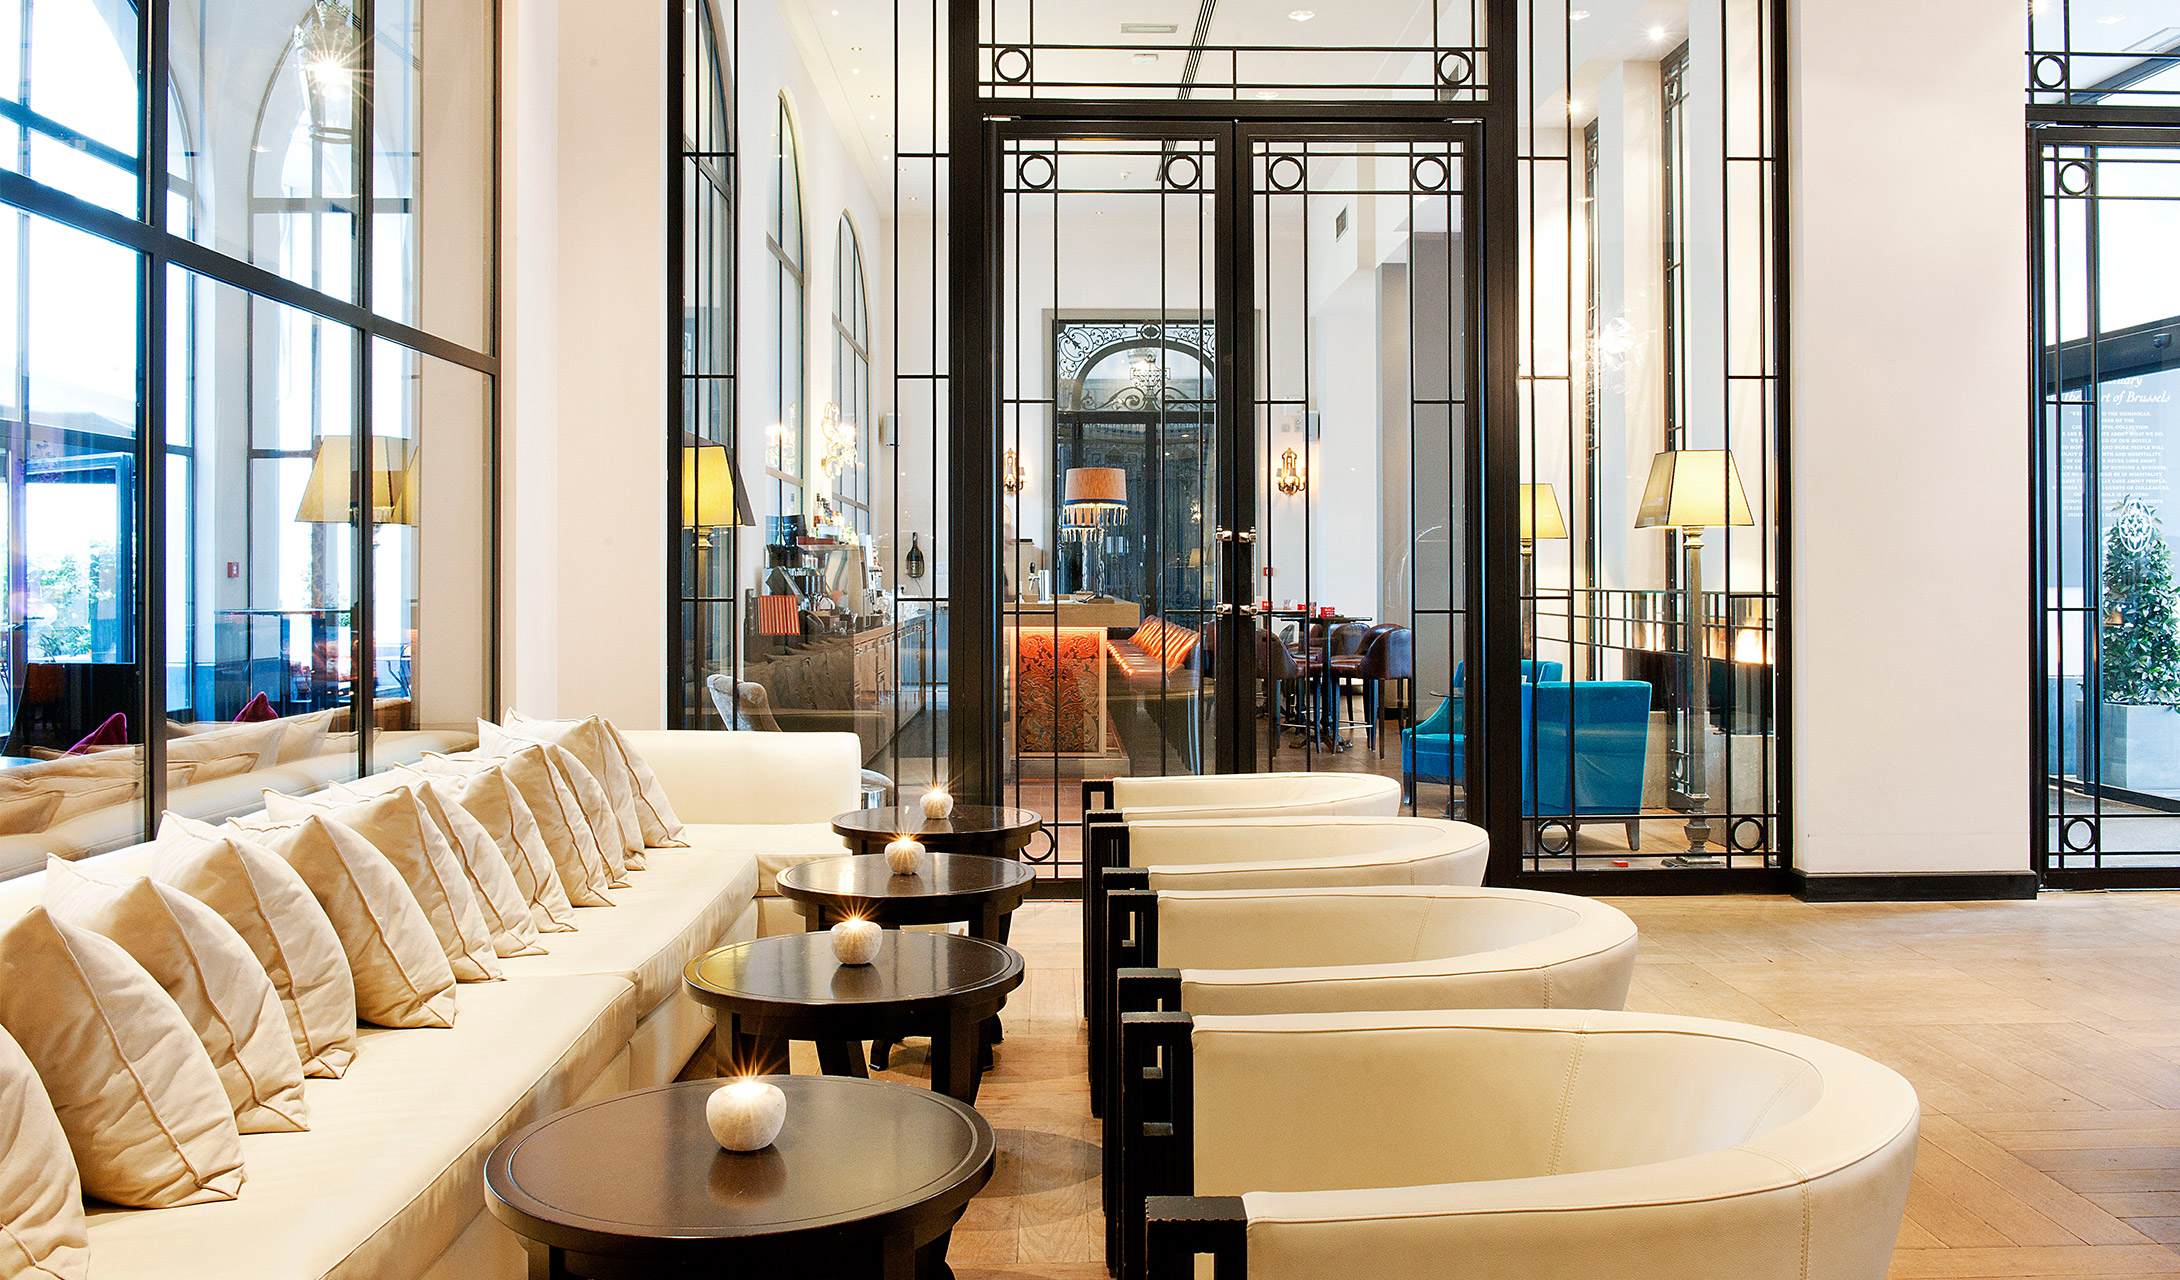 The dominican brussels belgium design hotels for Top 10 design hotels europe